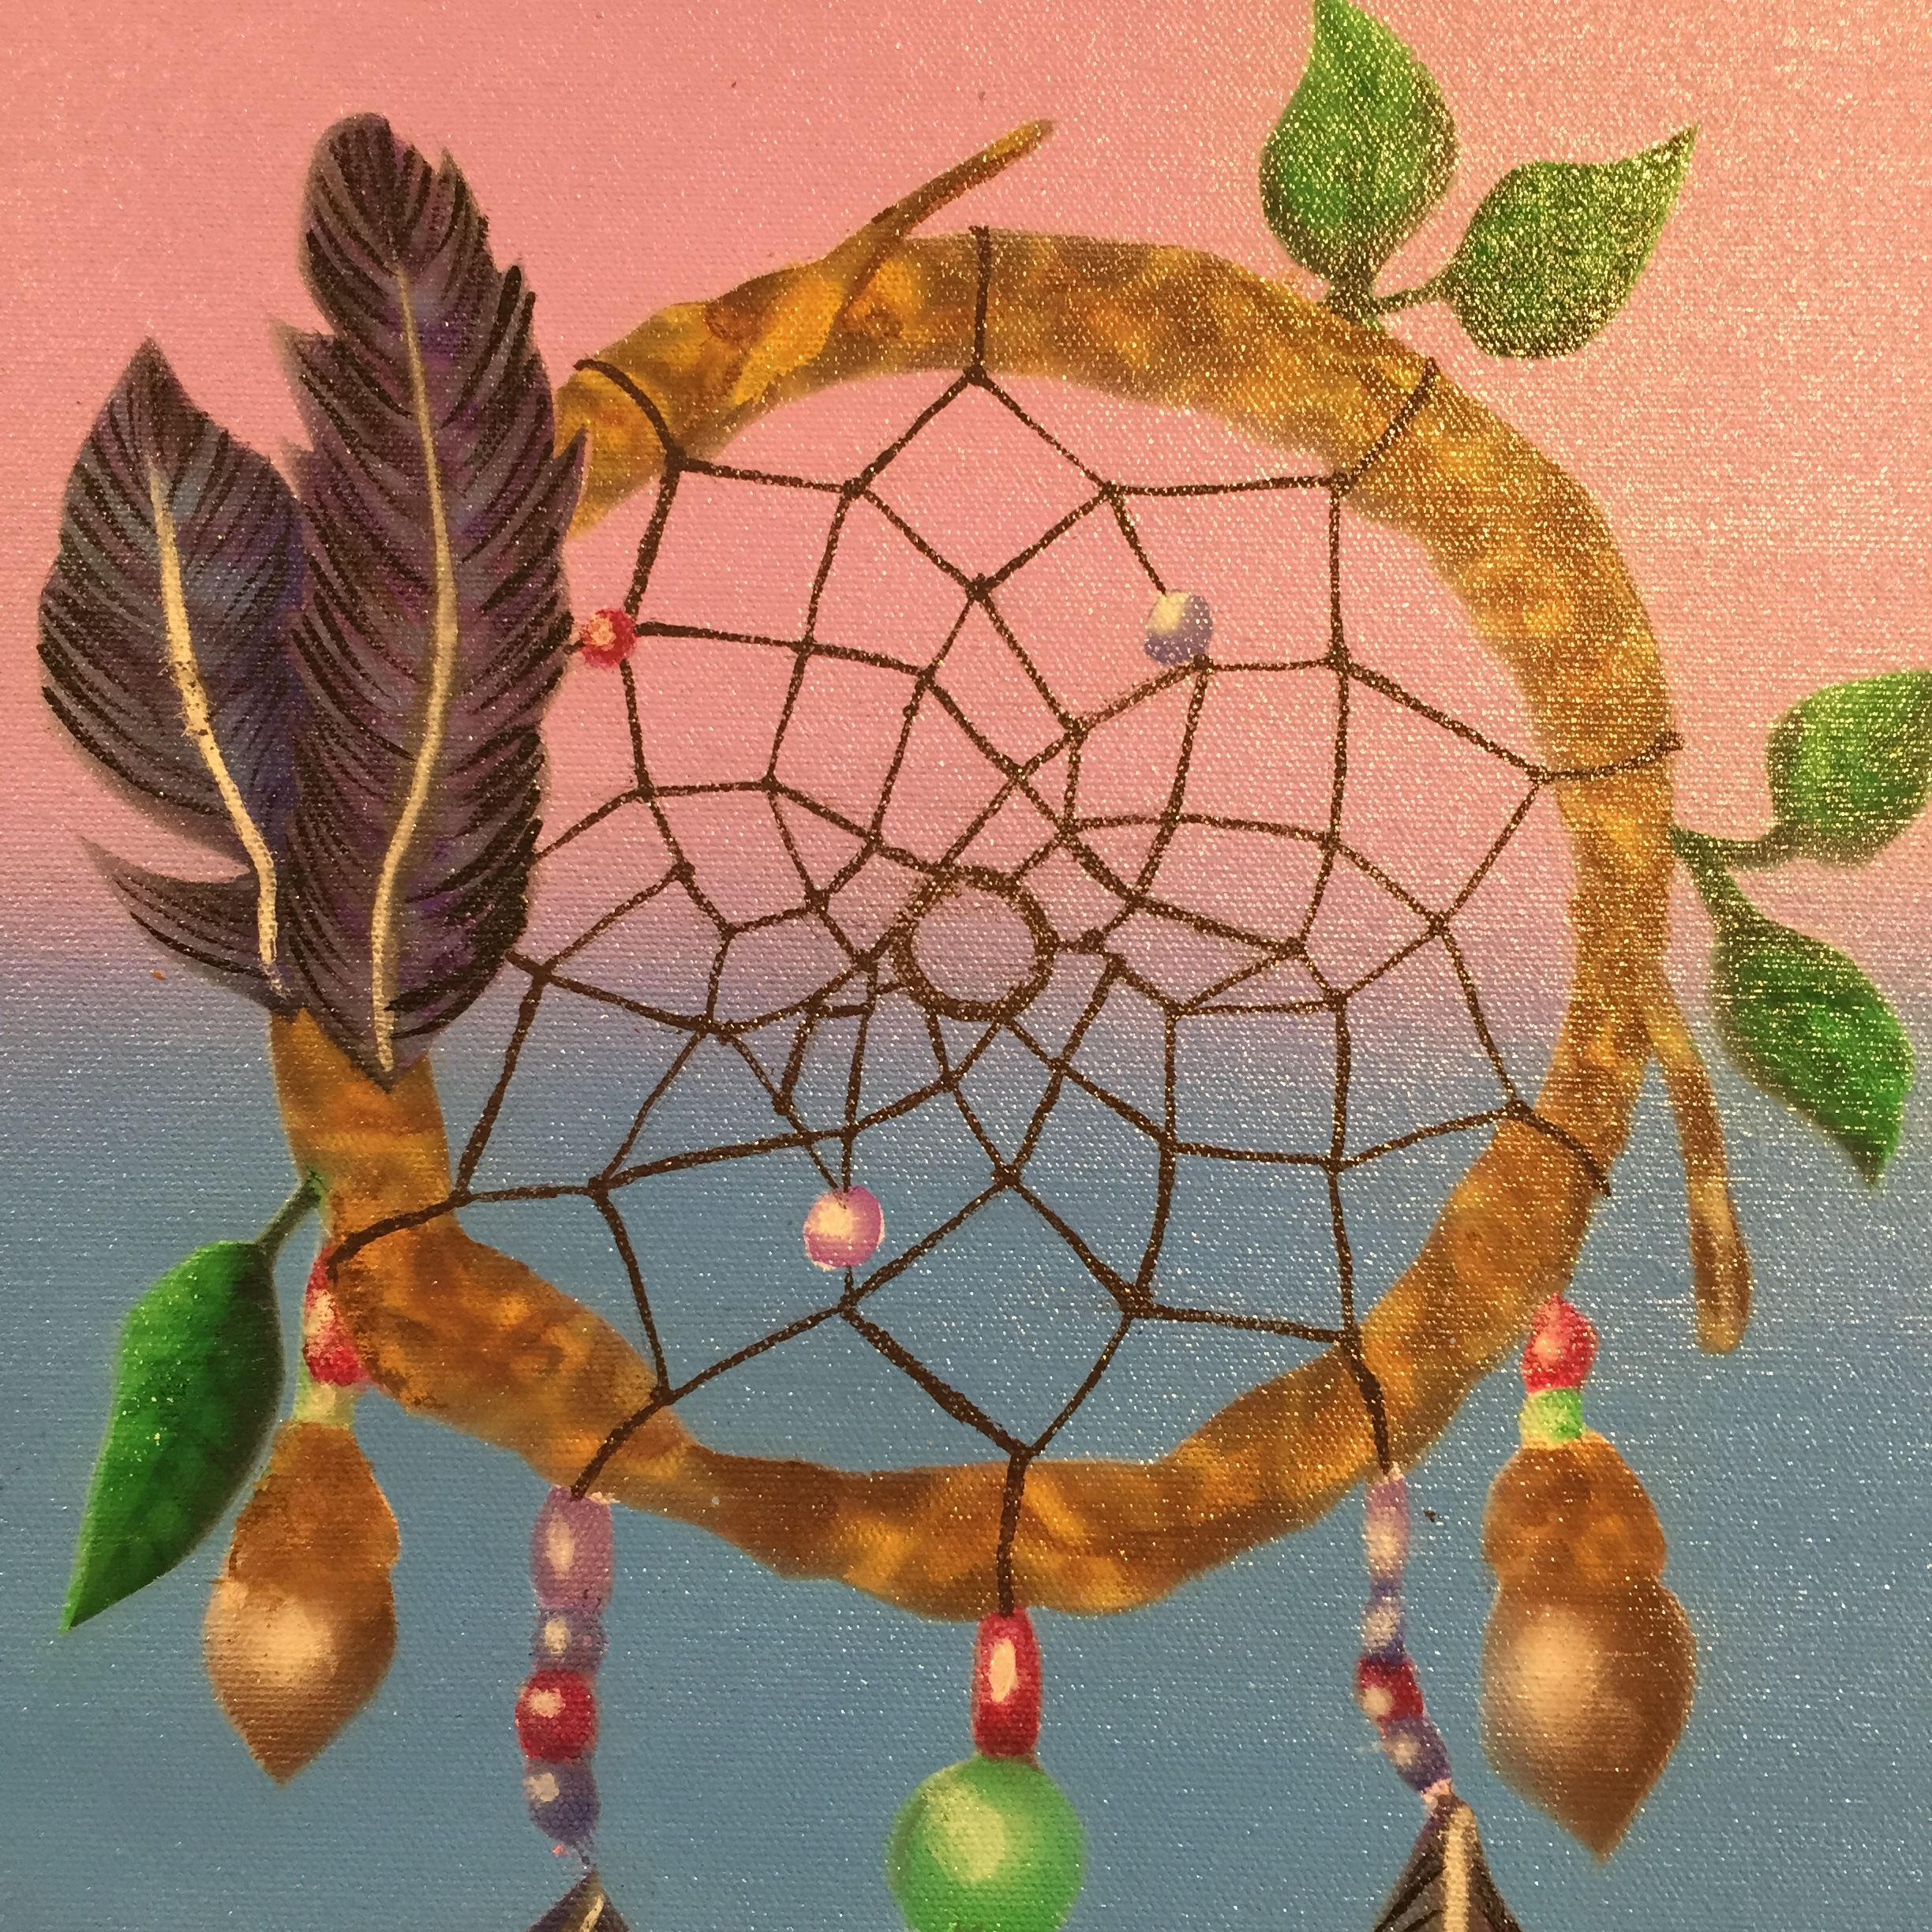 Painting of a dream catcher